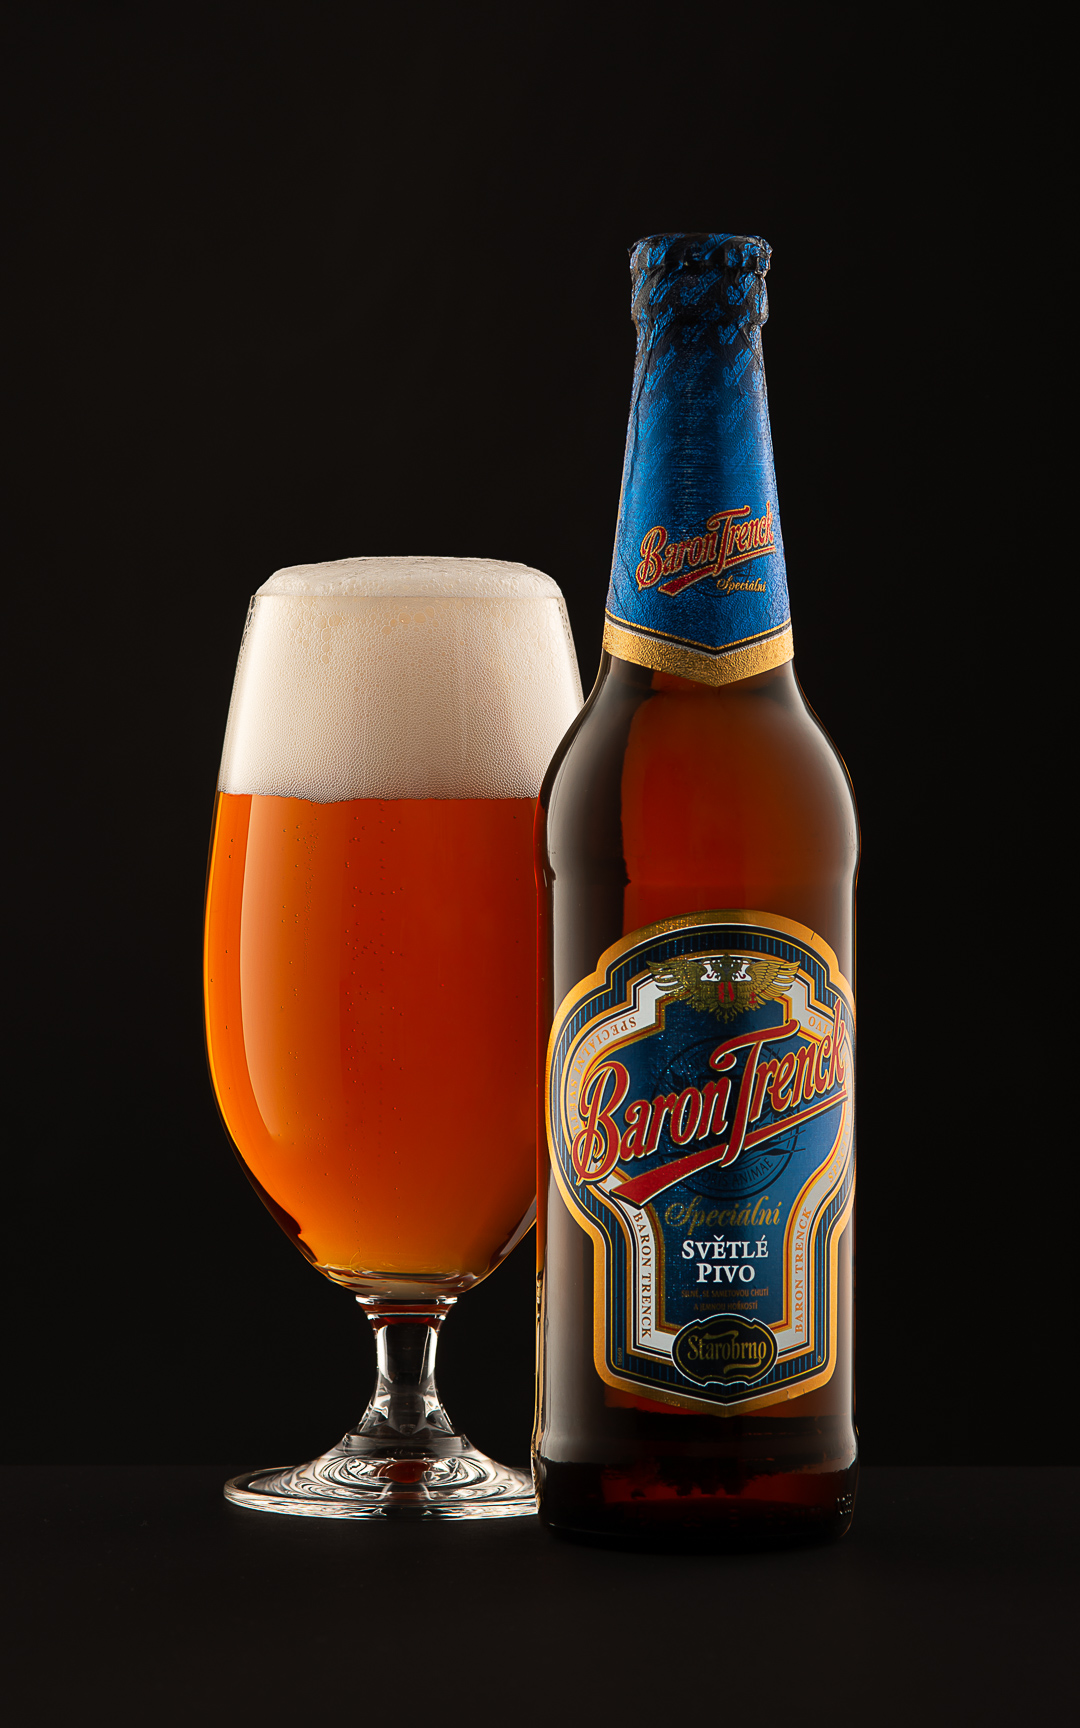 Baron Trenck beer - food and beverage photography